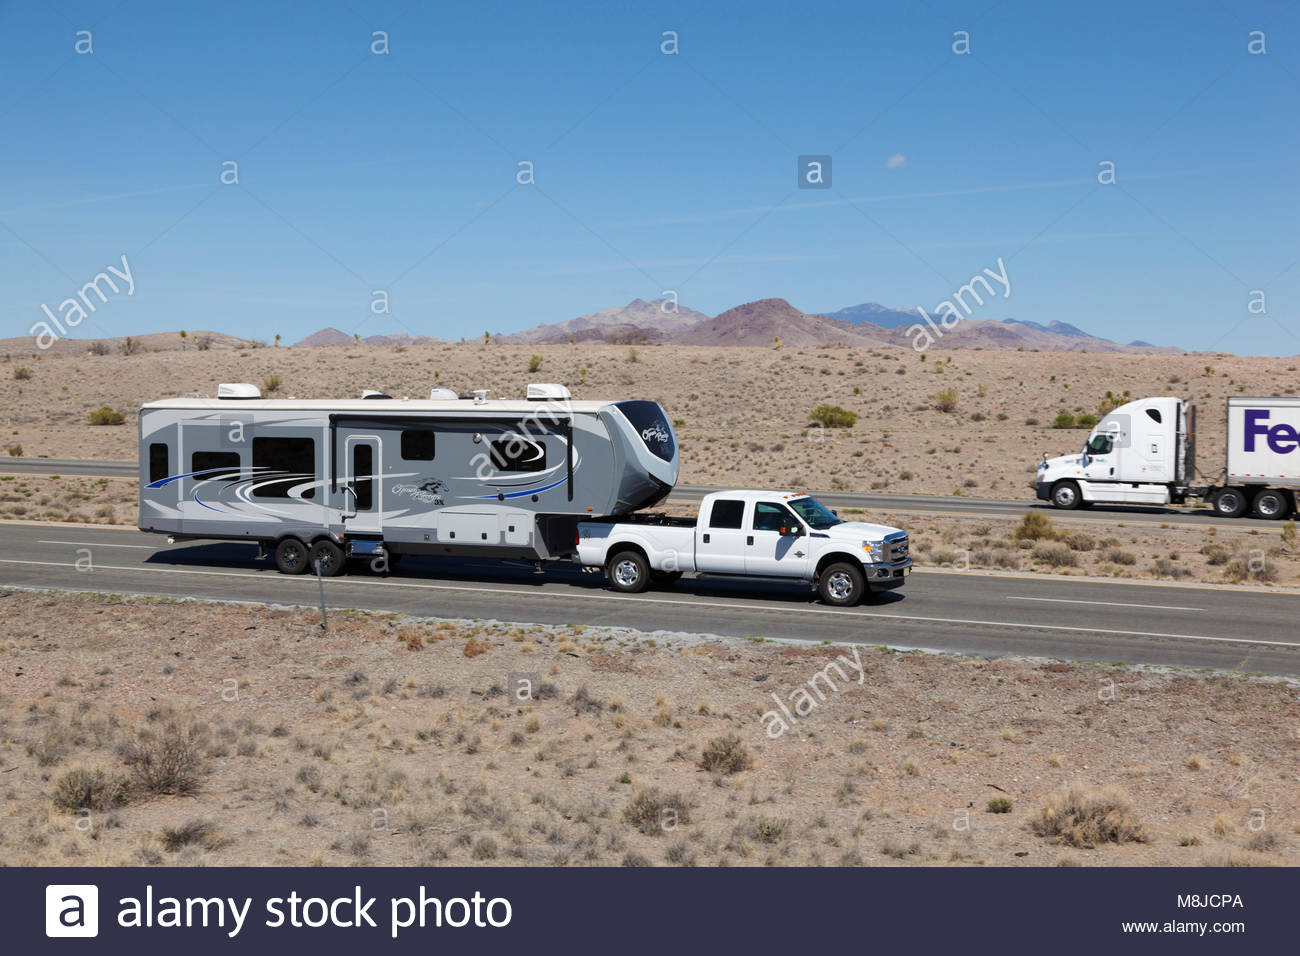 Pickup Truck Pulling Travel Trailer Fifth Wheel On Interstate Highway In Southeastern Arizona USA Driver And Passenger Barely Visible Cab